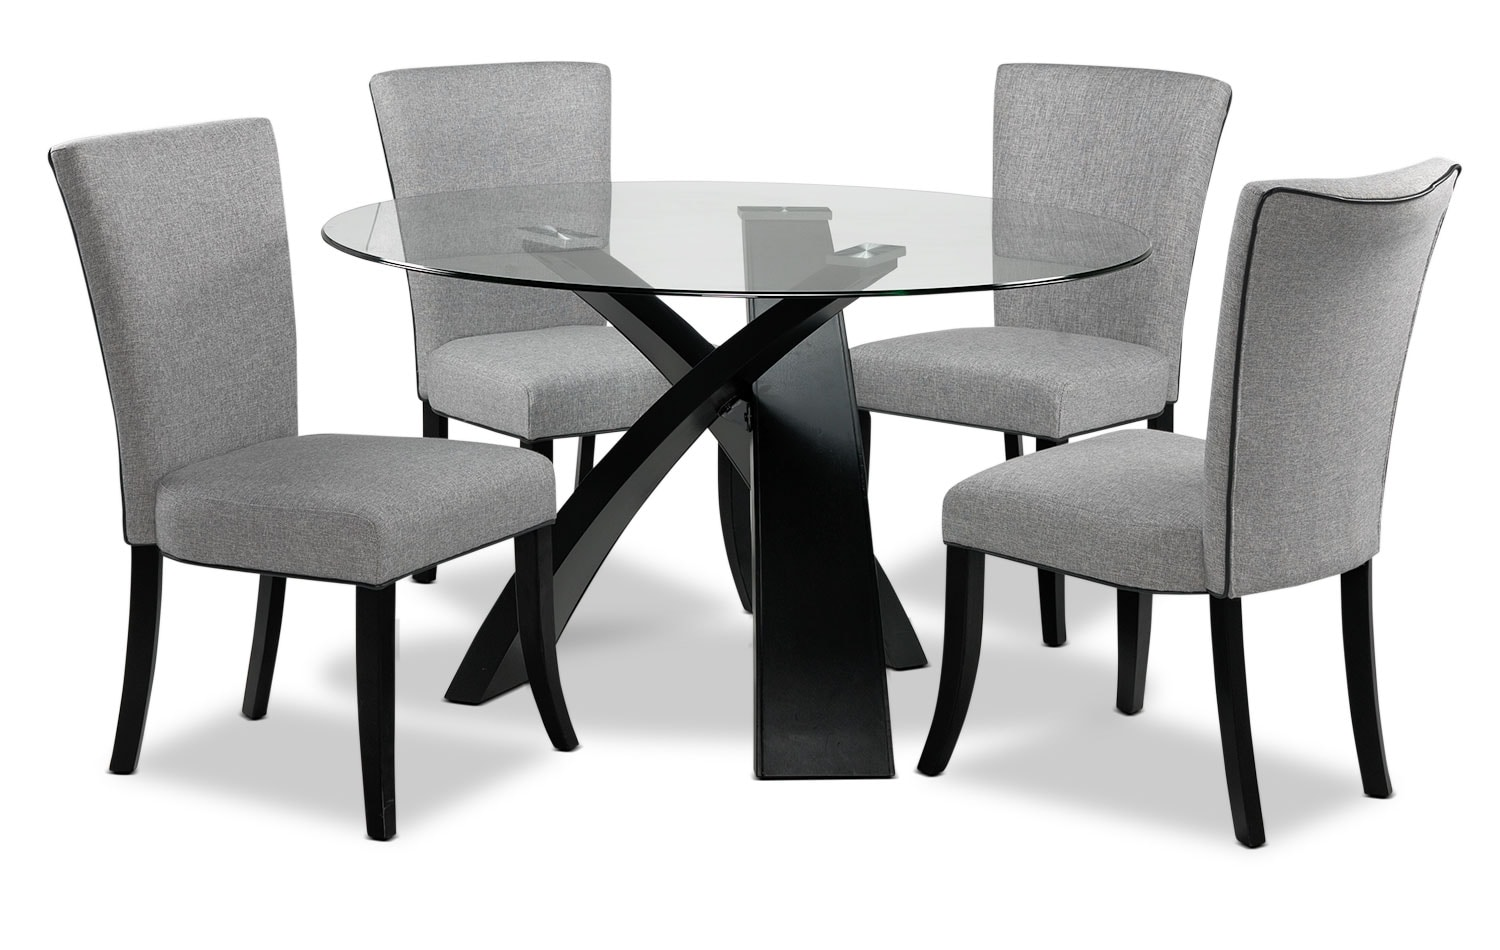 Casual Dining Room Furniture - Astro 5-Piece Dinette Set - Grey